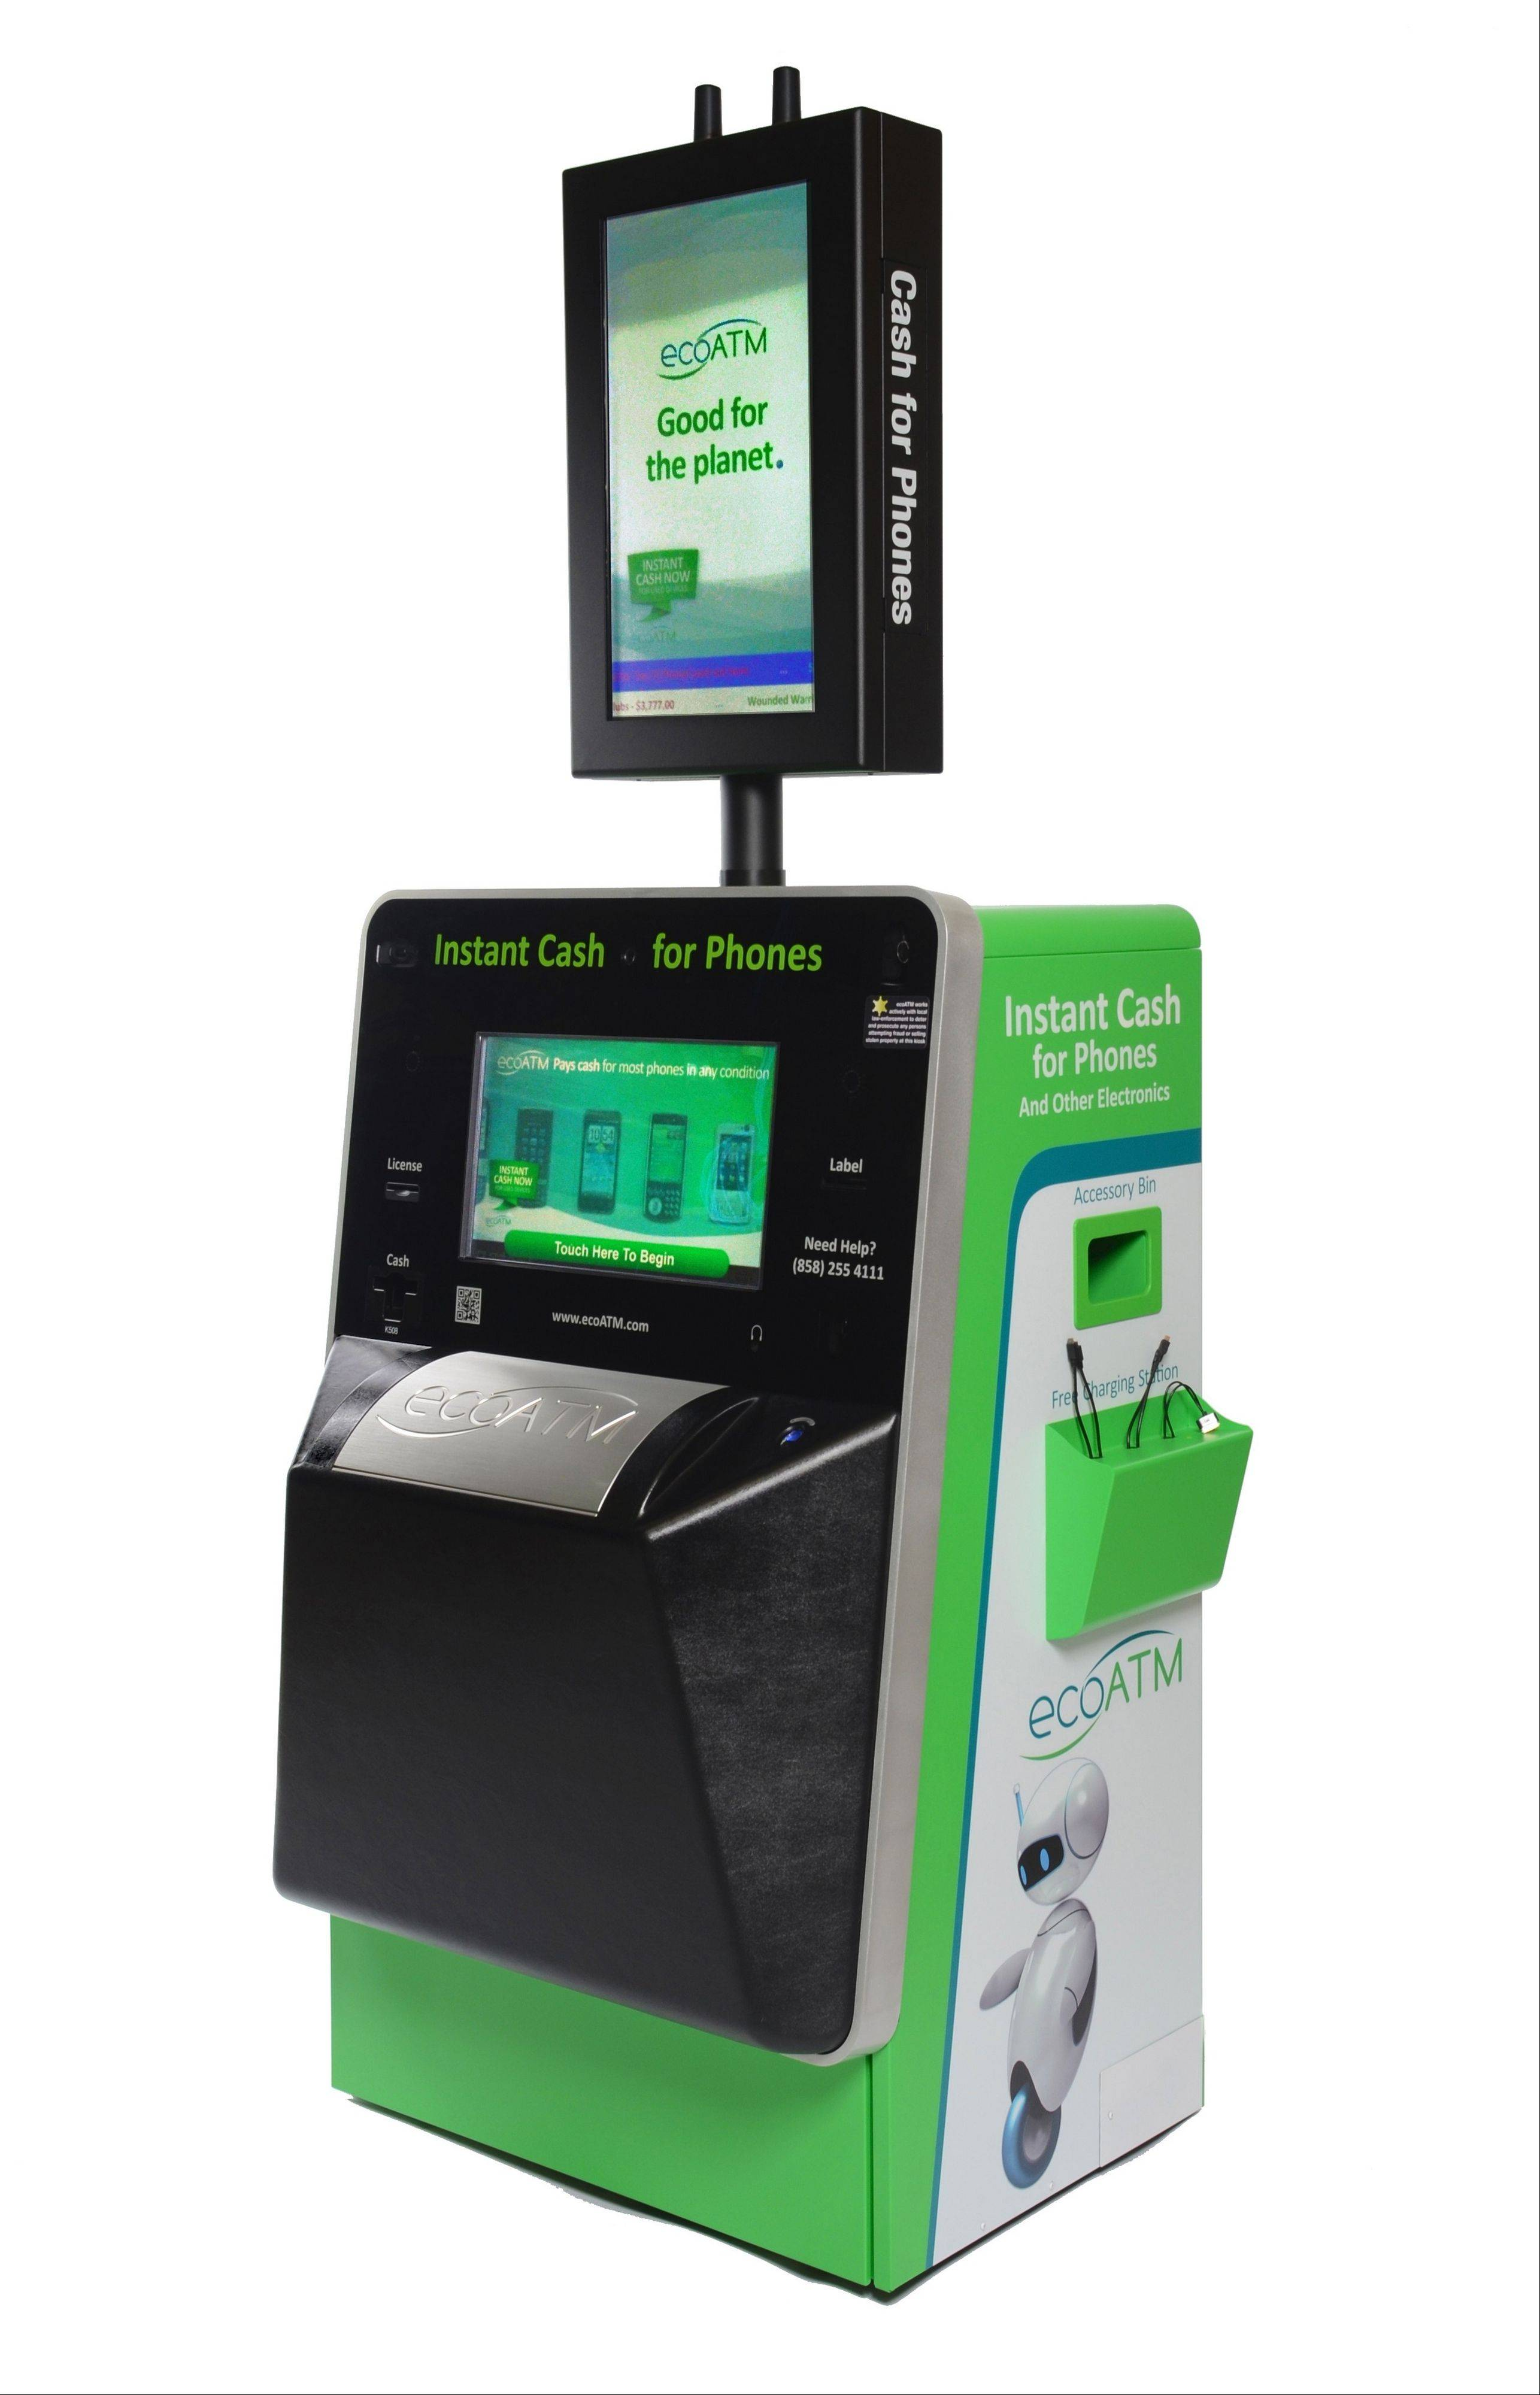 EcoATM machines, that evaluate and offer to buy your older cellphone, are available at Woodfield Mall in Schaumburg, Stratford Square in Bloomingdale, Westfield Hawthorn in Vernon Hills, among others. The company was recently acquired by Outerwall, formerly Coinstar, which also owns Oakbrook Terrace-based Redbox.